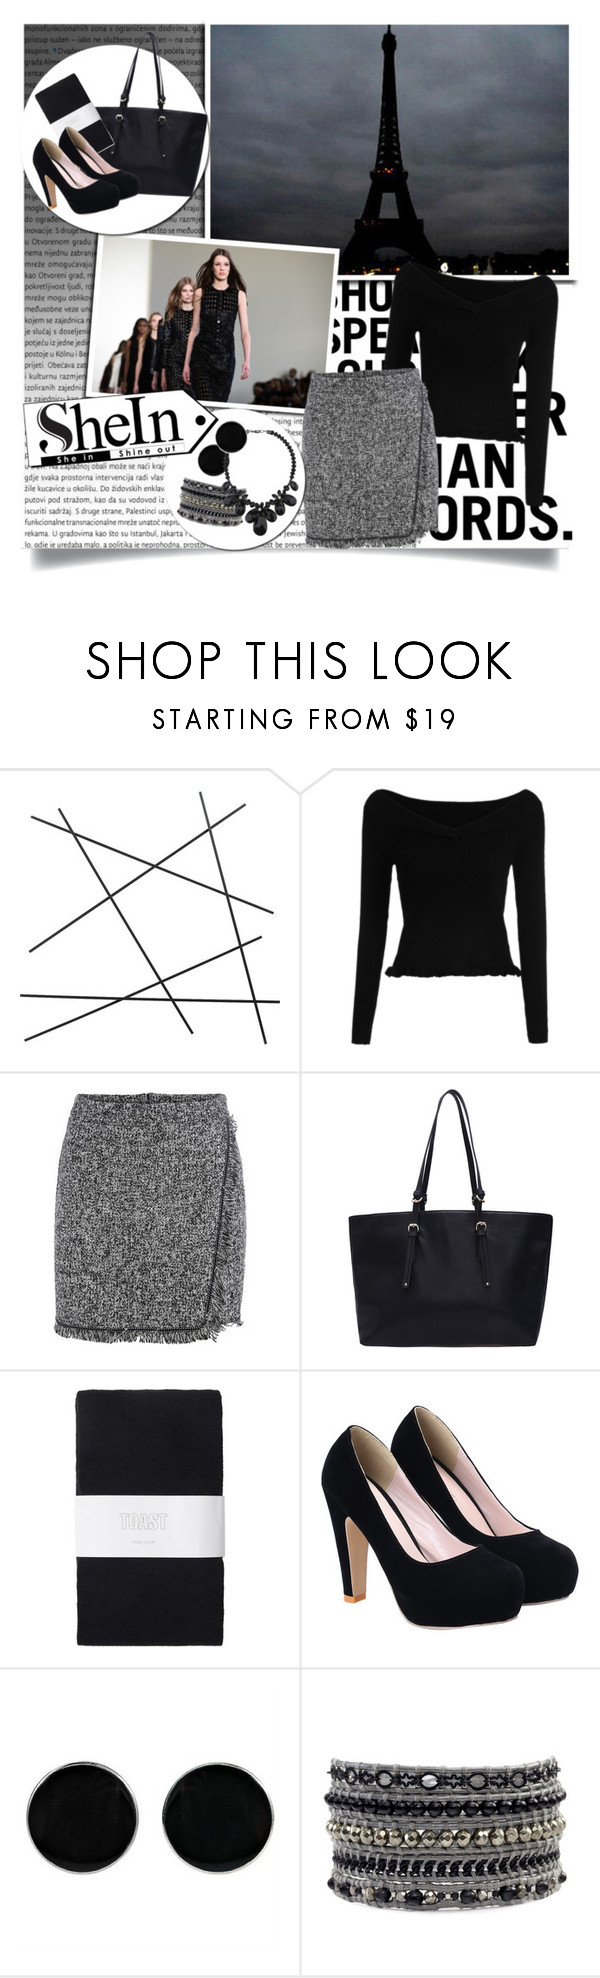 """""""SheIn: Grey Fringe Skirt"""" by rosey-wolf-x ❤ liked on Polyvore featuring CB2, Oris, Chanel, Mercedes-Benz, Toast, AeraVida, Wallis, WorkWear, Sheinside and shein"""